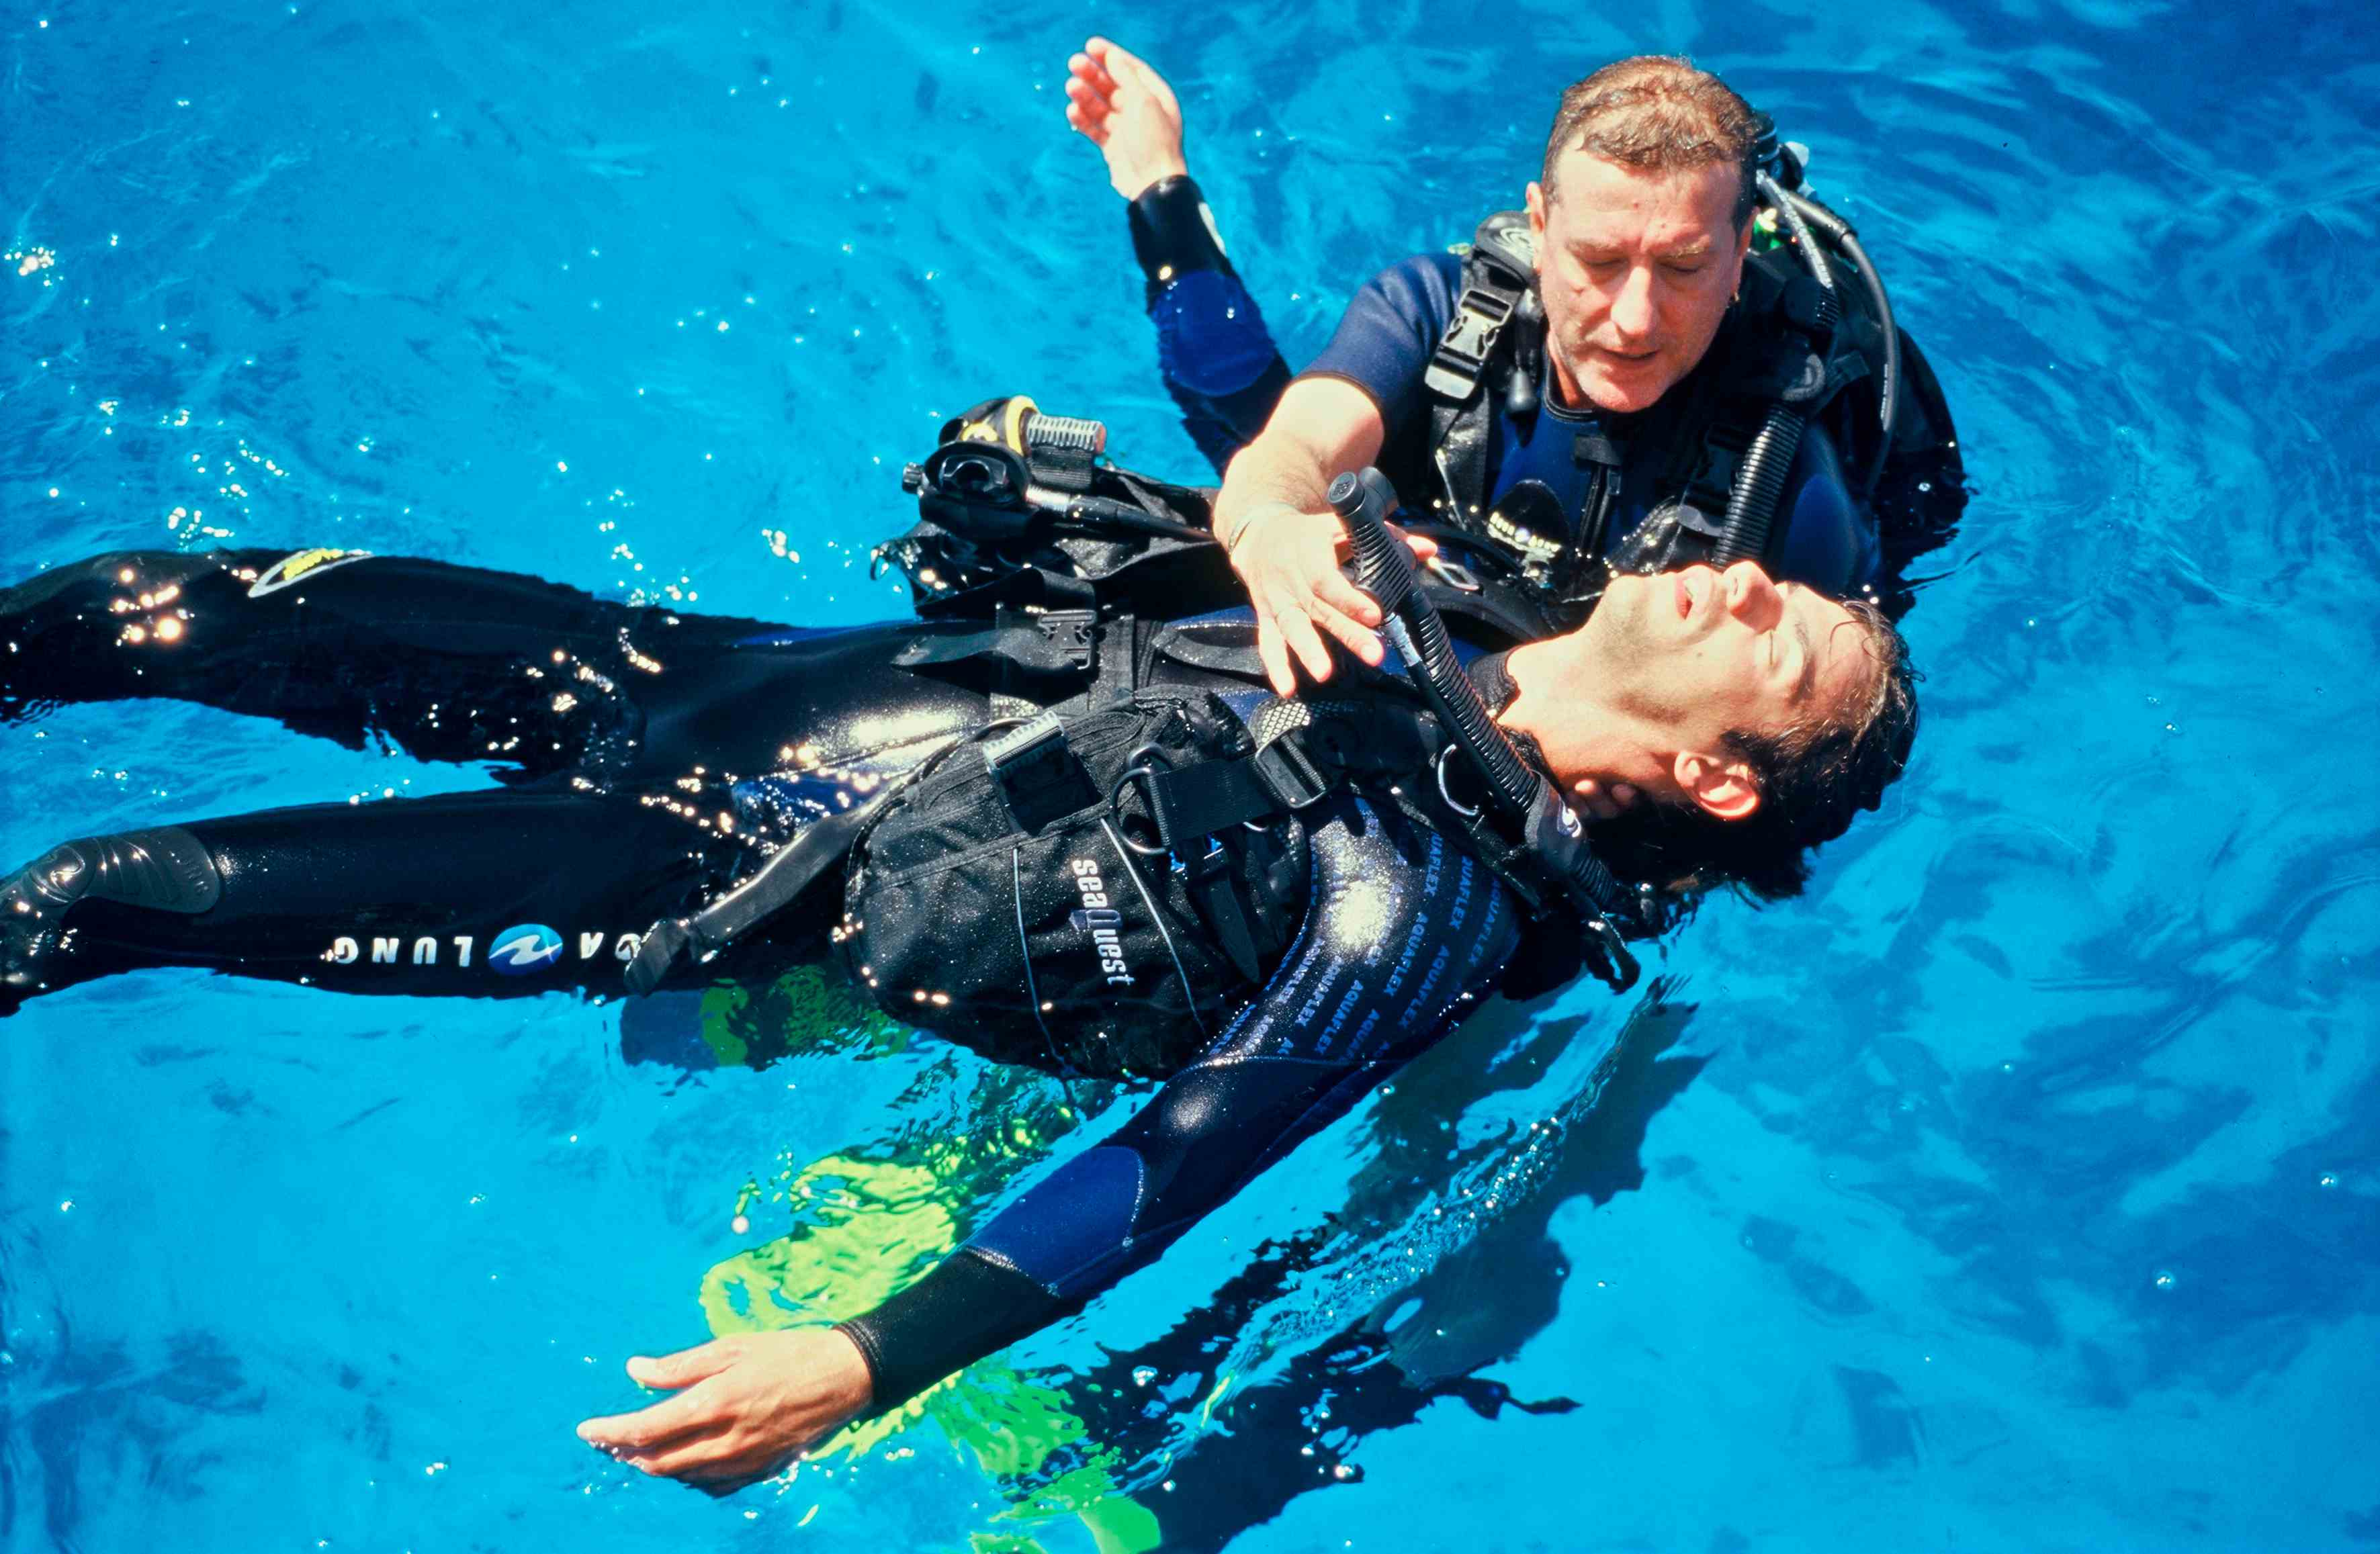 lentic_diving_rescue_diver